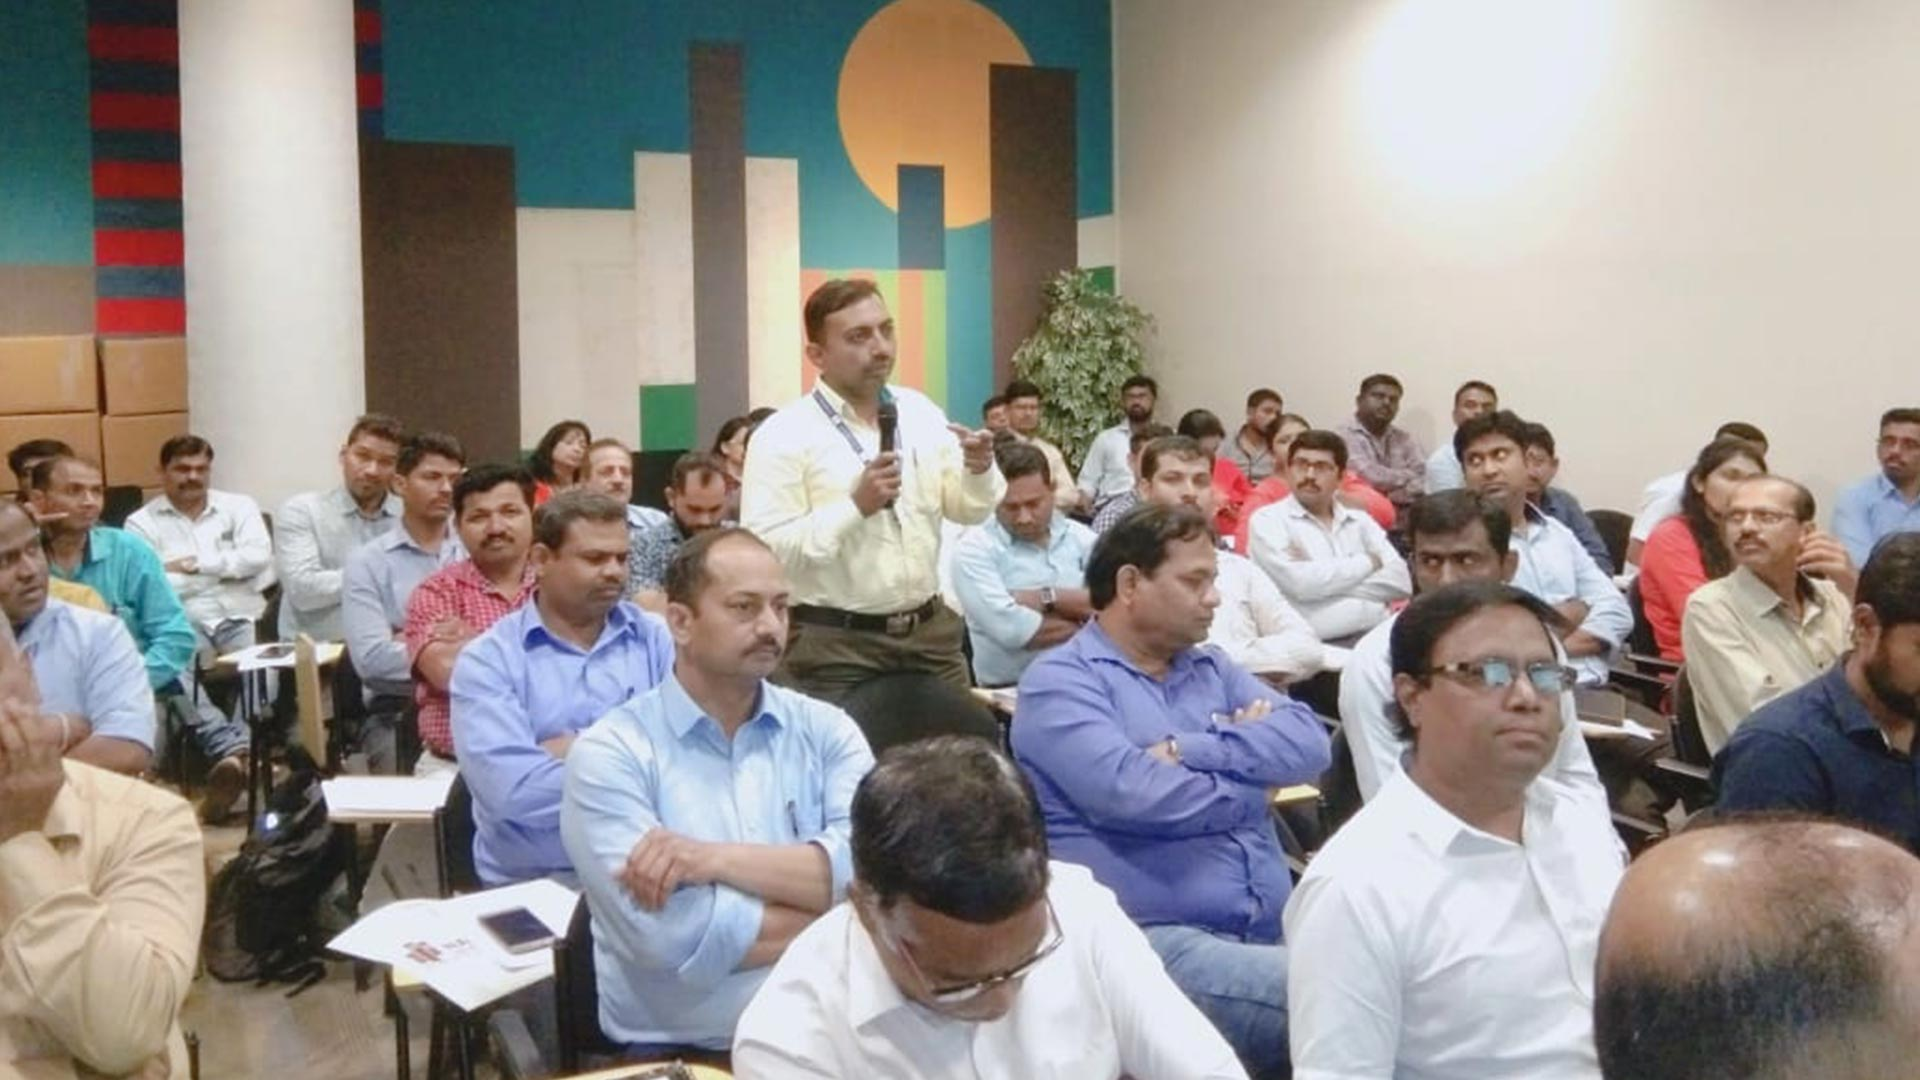 CREDAI-Pune Metro conducted Interactive Workshop on Labour Registration and Welfare Benefits under BOCW for HR/Admin/Legal/Project Staff of its Develo